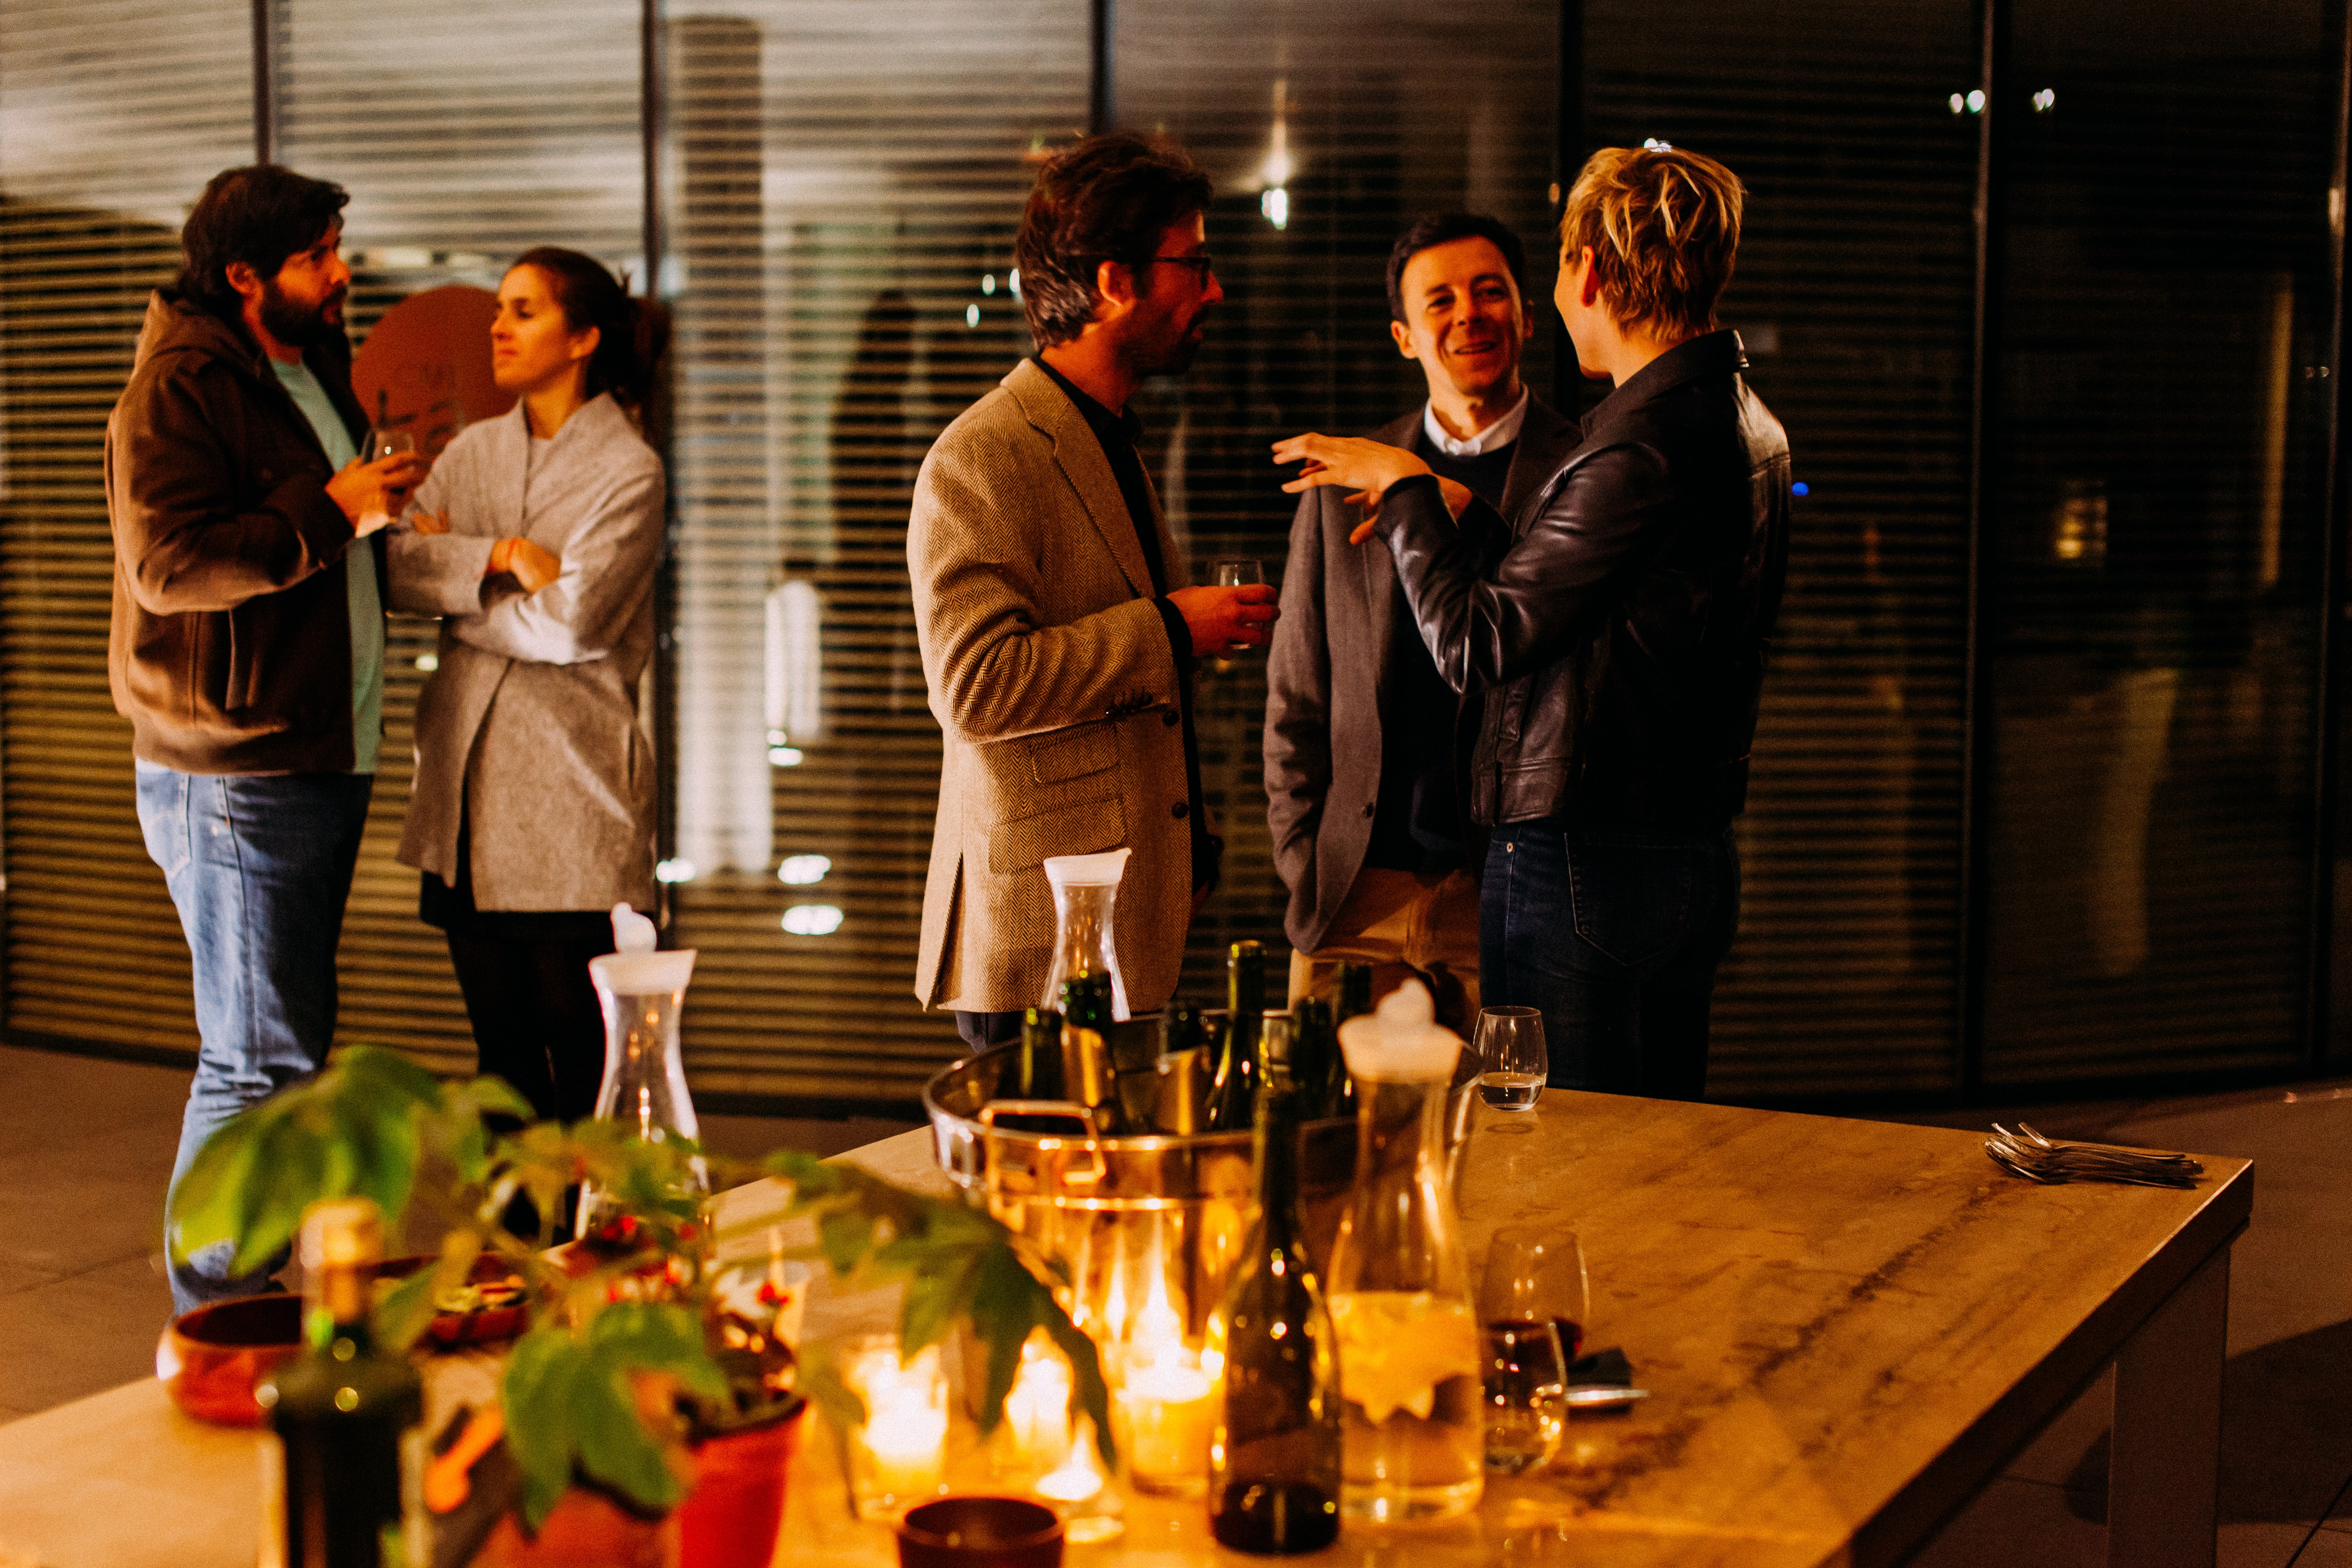 "When it comes to finding clients, networking might be your new best friend! Photo by <a href=""https://unsplash.com/@antenna?utm_source=unsplash&utm_medium=referral&utm_content=creditCopyText"">Antenna</a> on <a href=""https://unsplash.com/collections/8370033/friends-%2B-groups?utm_source=unsplash&utm_medium=referral&utm_content=creditCopyText"">Unsplash</a>"